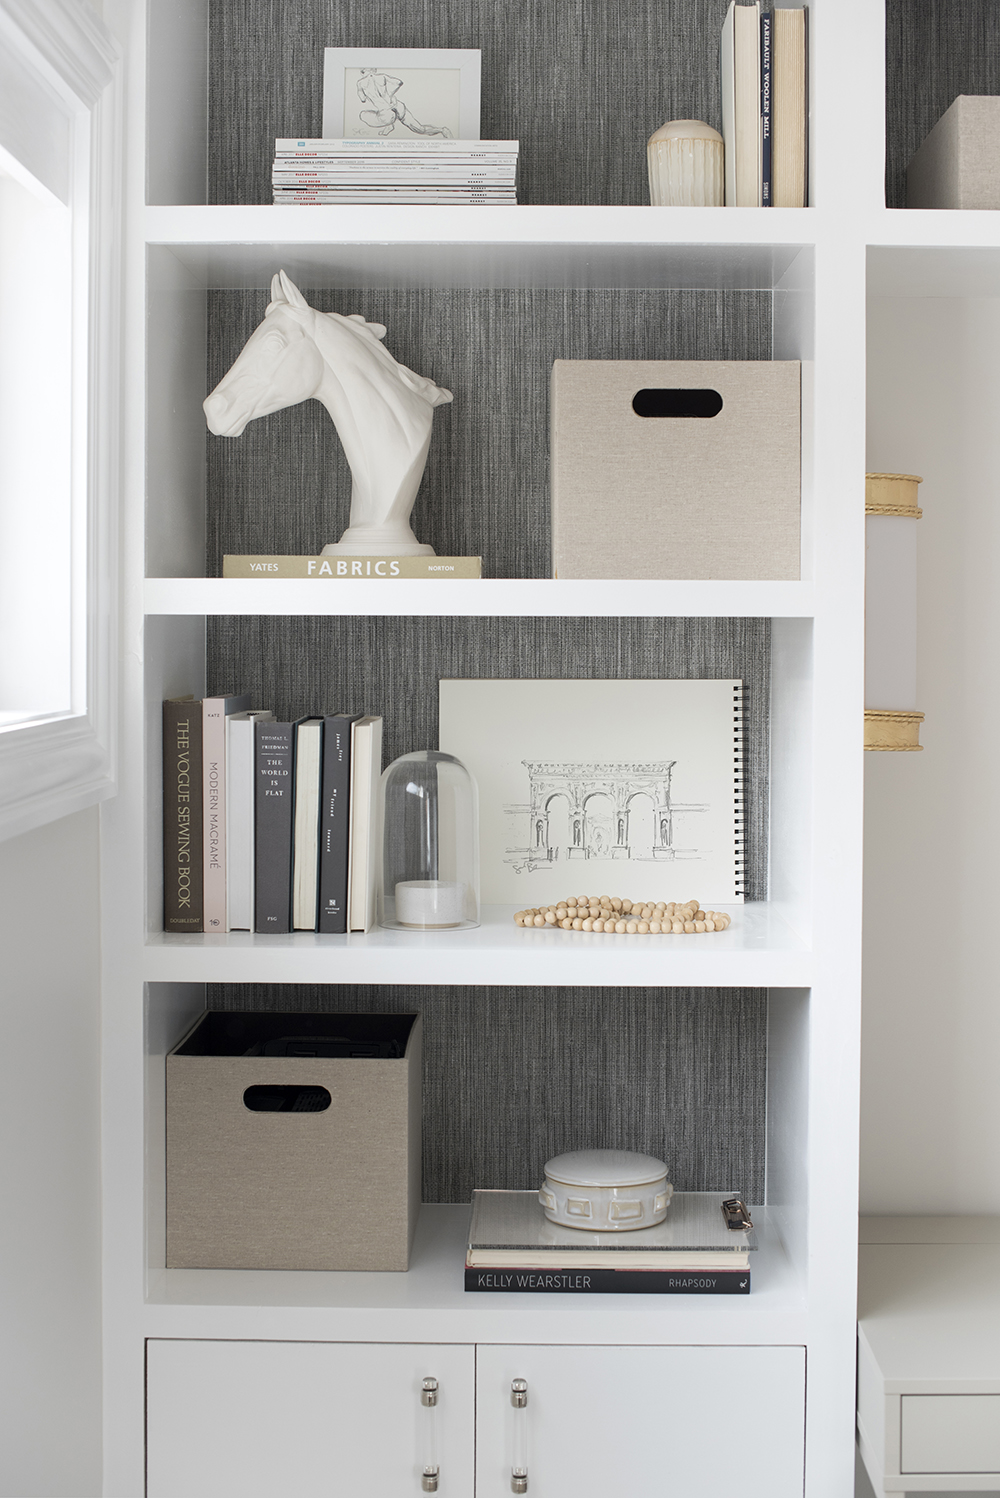 Diy Built Ins And Office Organization Room For Tuesday